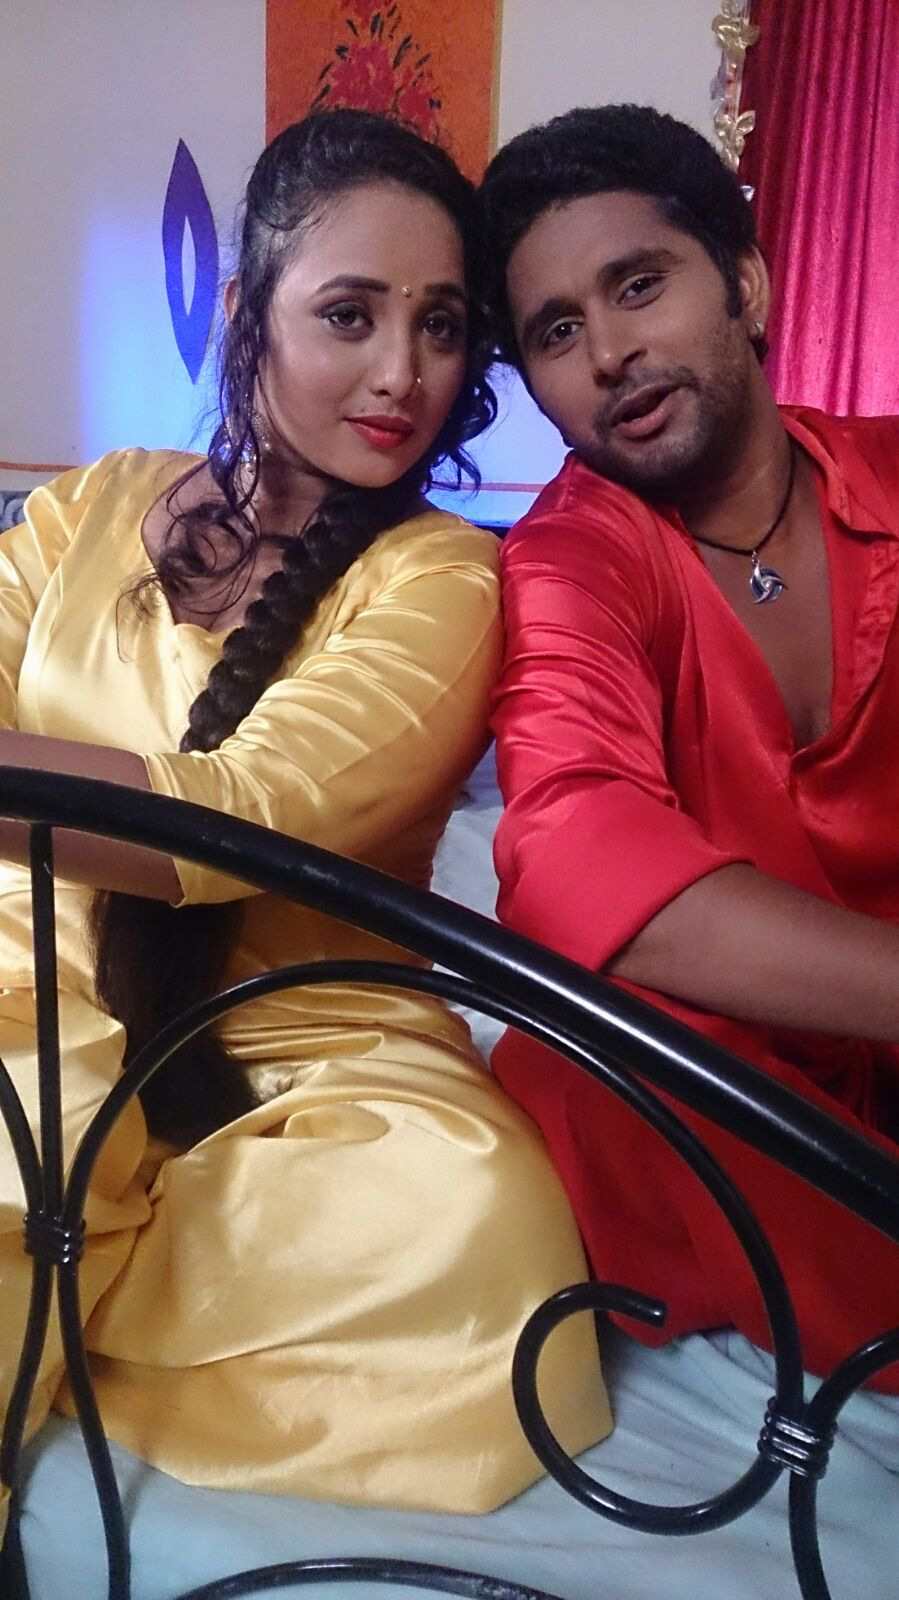 Yash Mishra, Rani Chatterjee on Set of Ichhadhari Bhojpuri Film Shooting photo